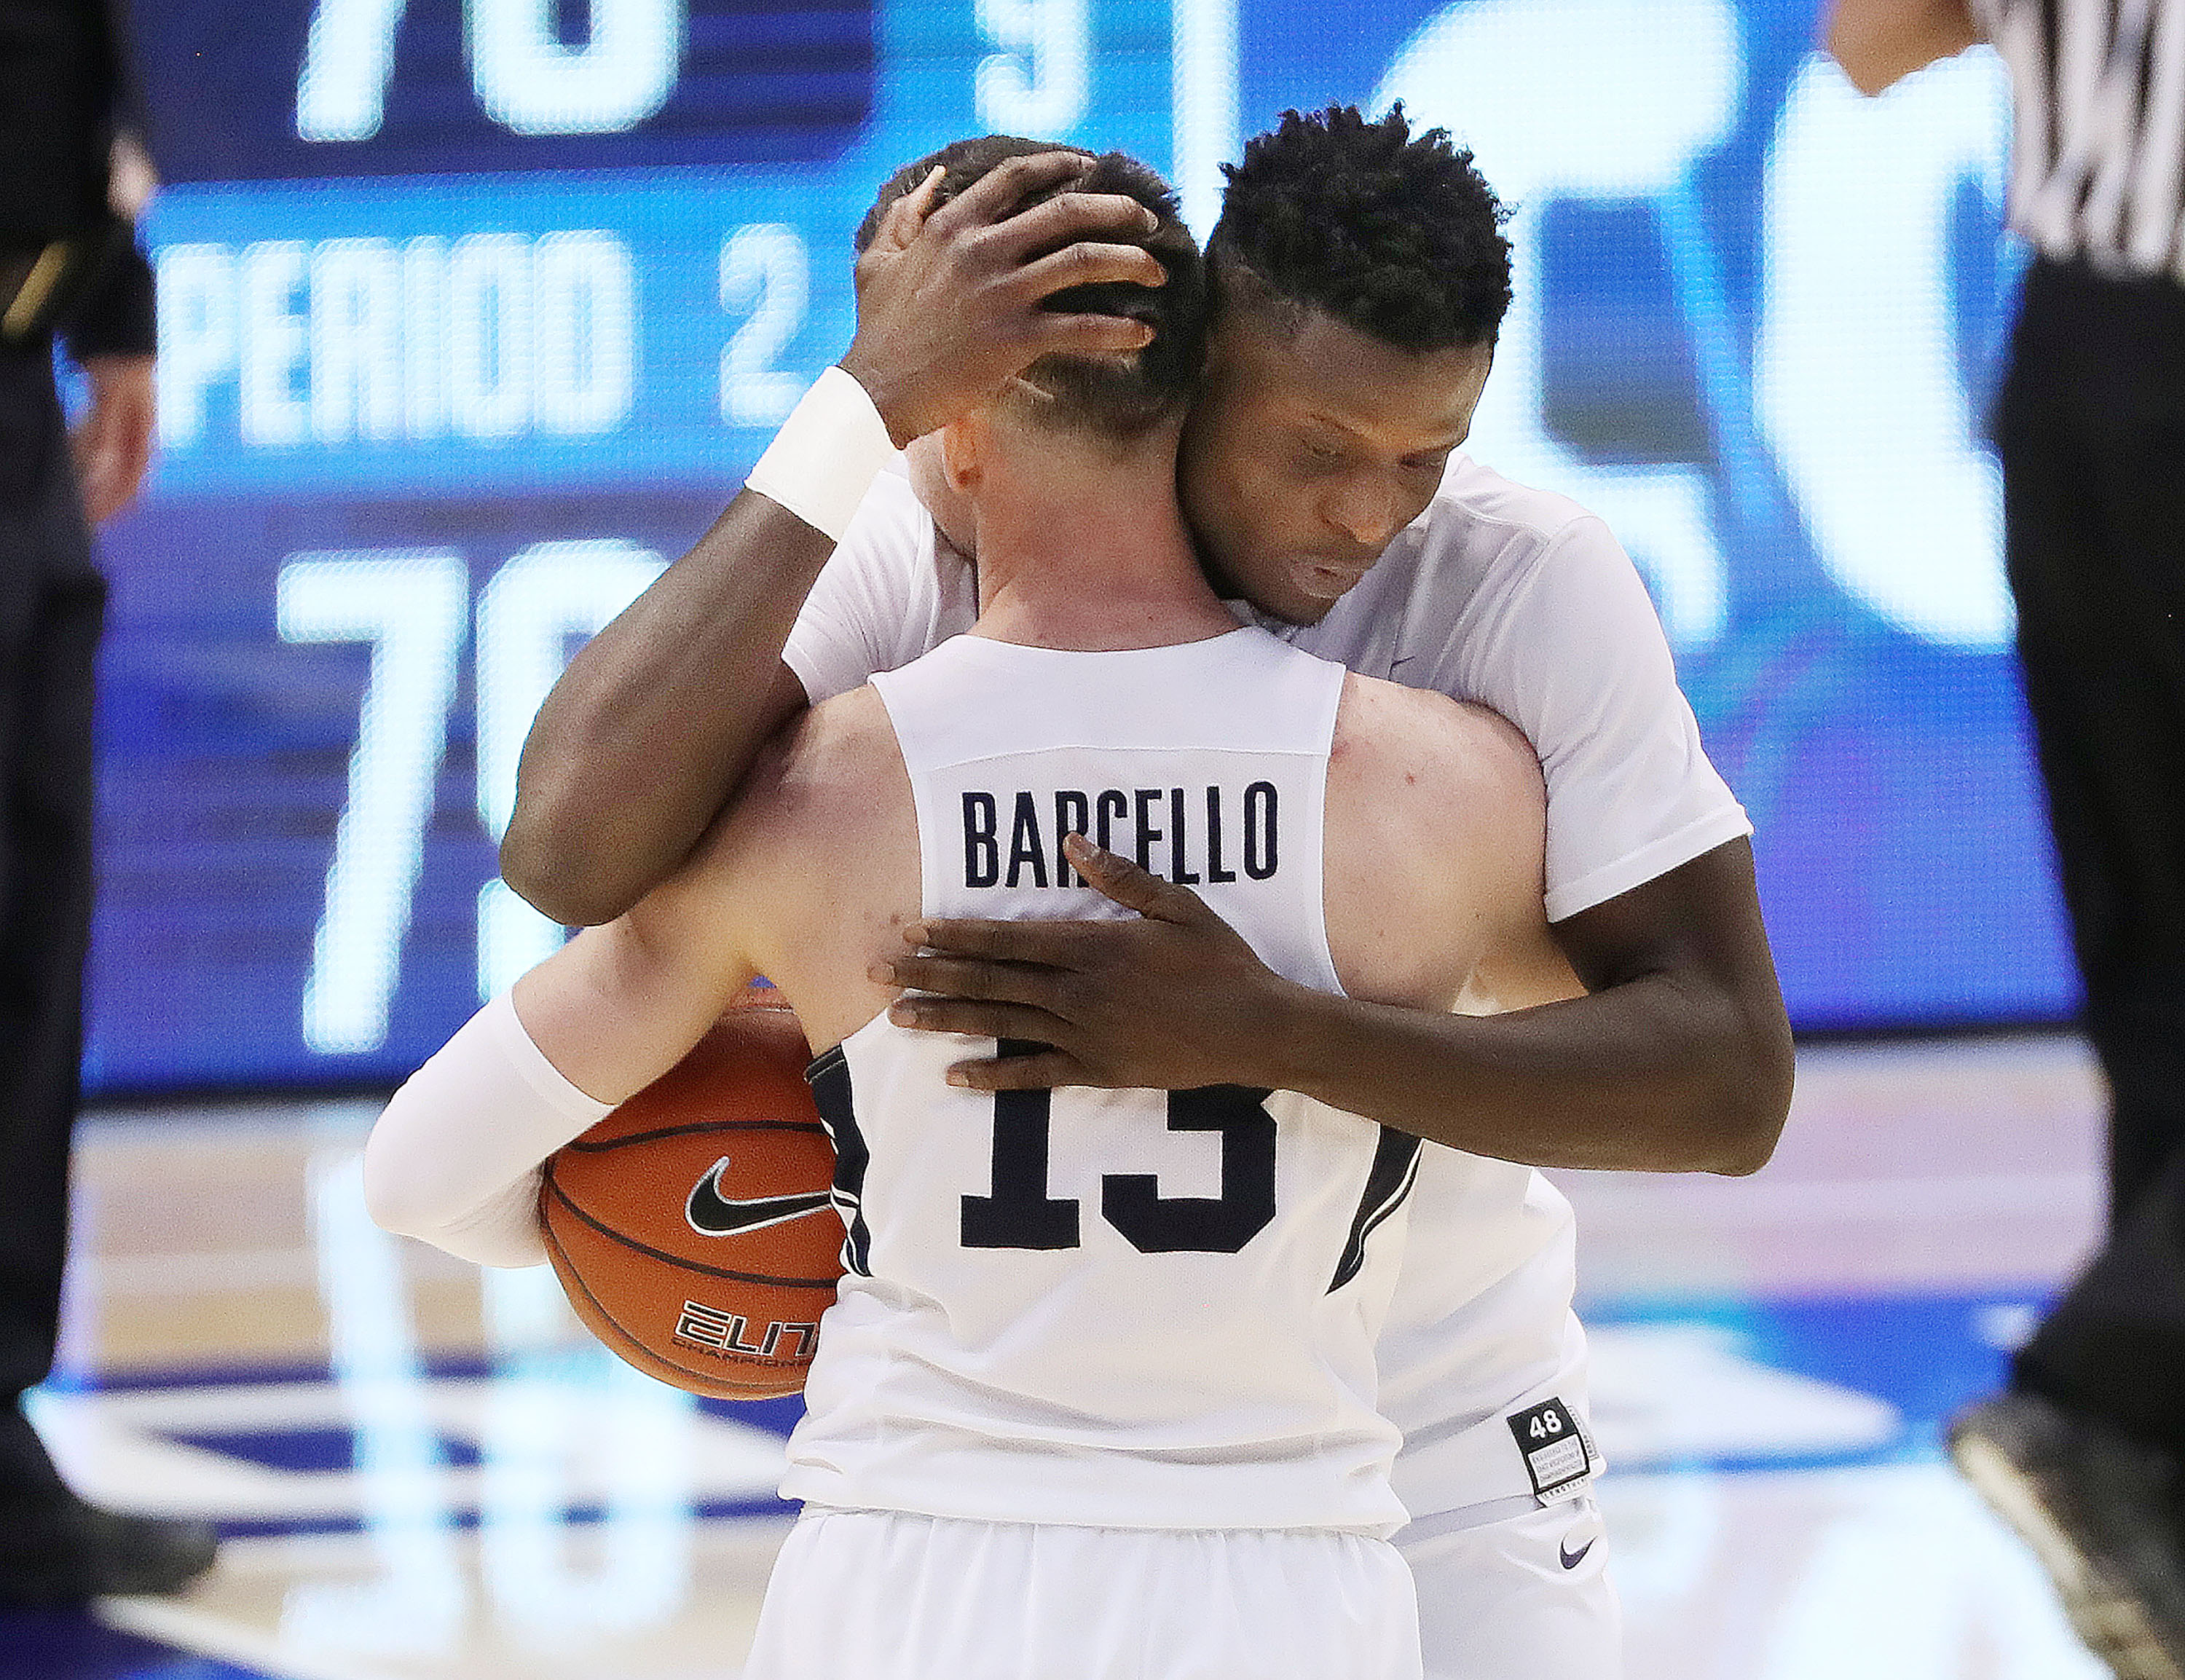 Brigham Young Cougars guard Alex Barcello (13) and Brigham Young Cougars forward Gideon George (5) hug after beating the San Francisco Dons in Provo on Thursday, Feb. 25, 2021. BYU won 79-73.